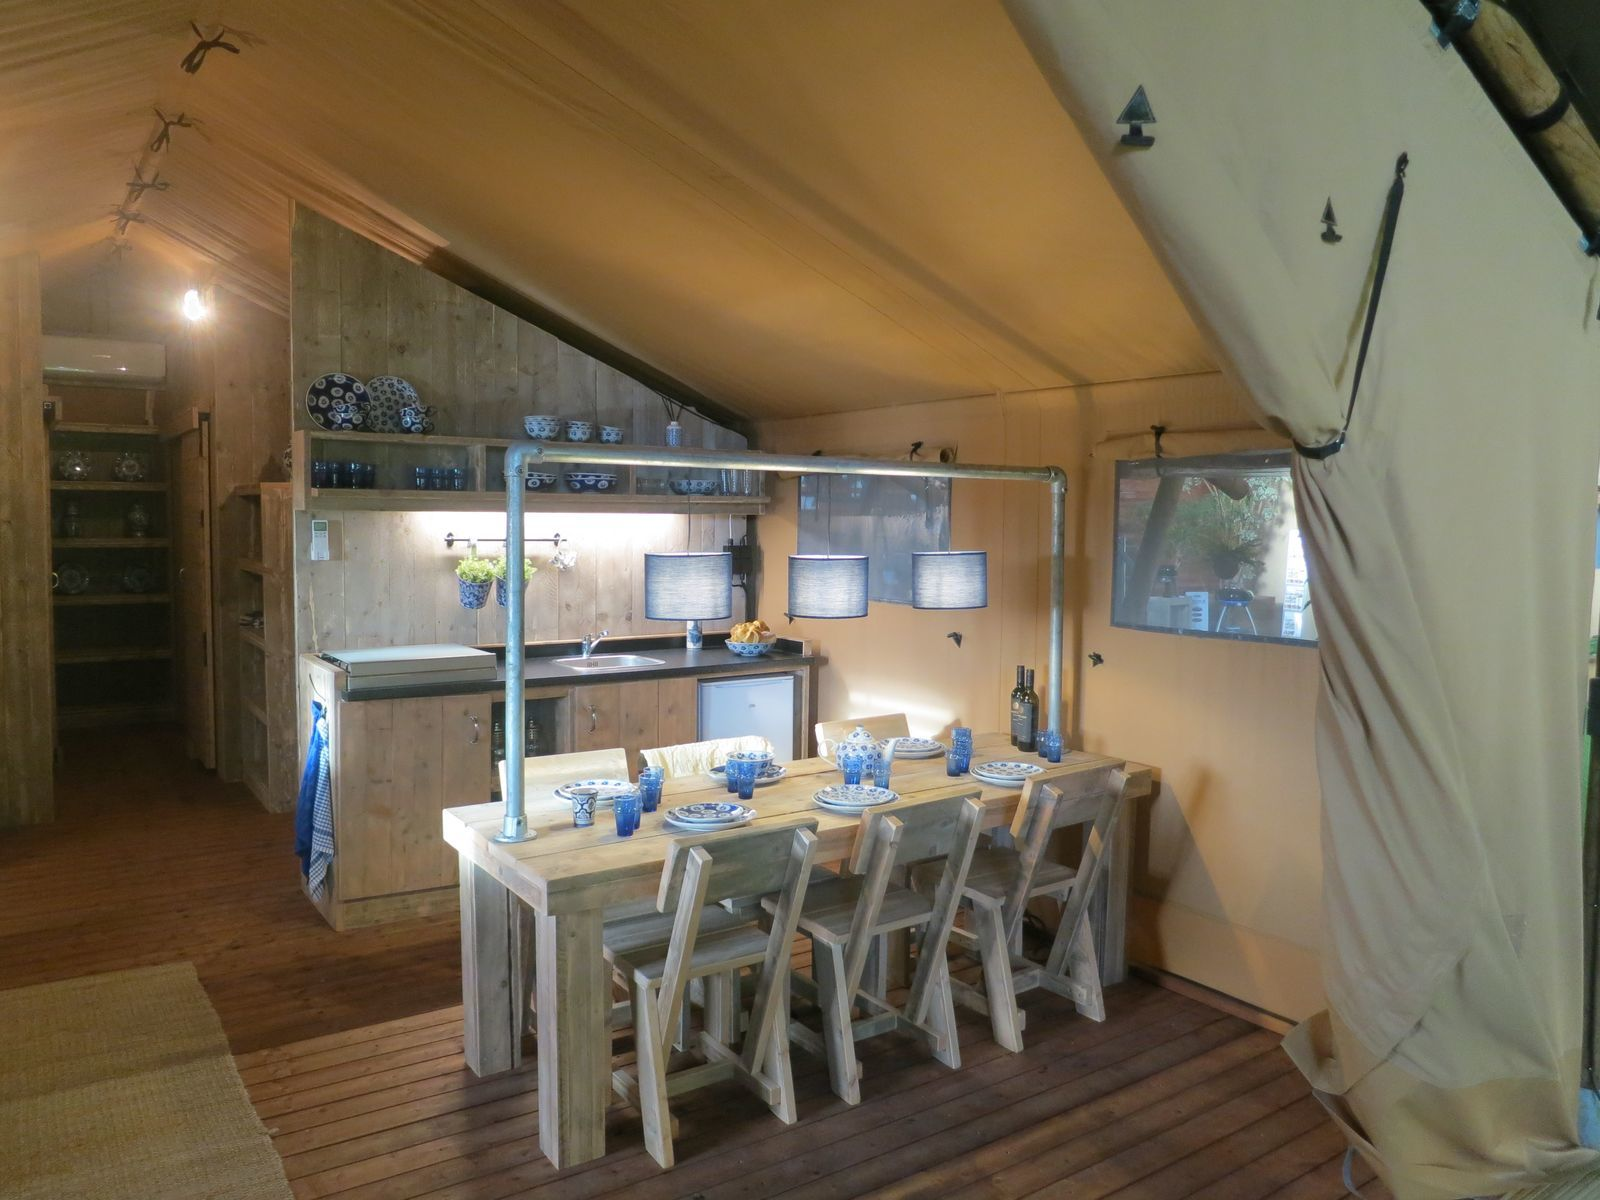 6-person glamping tent